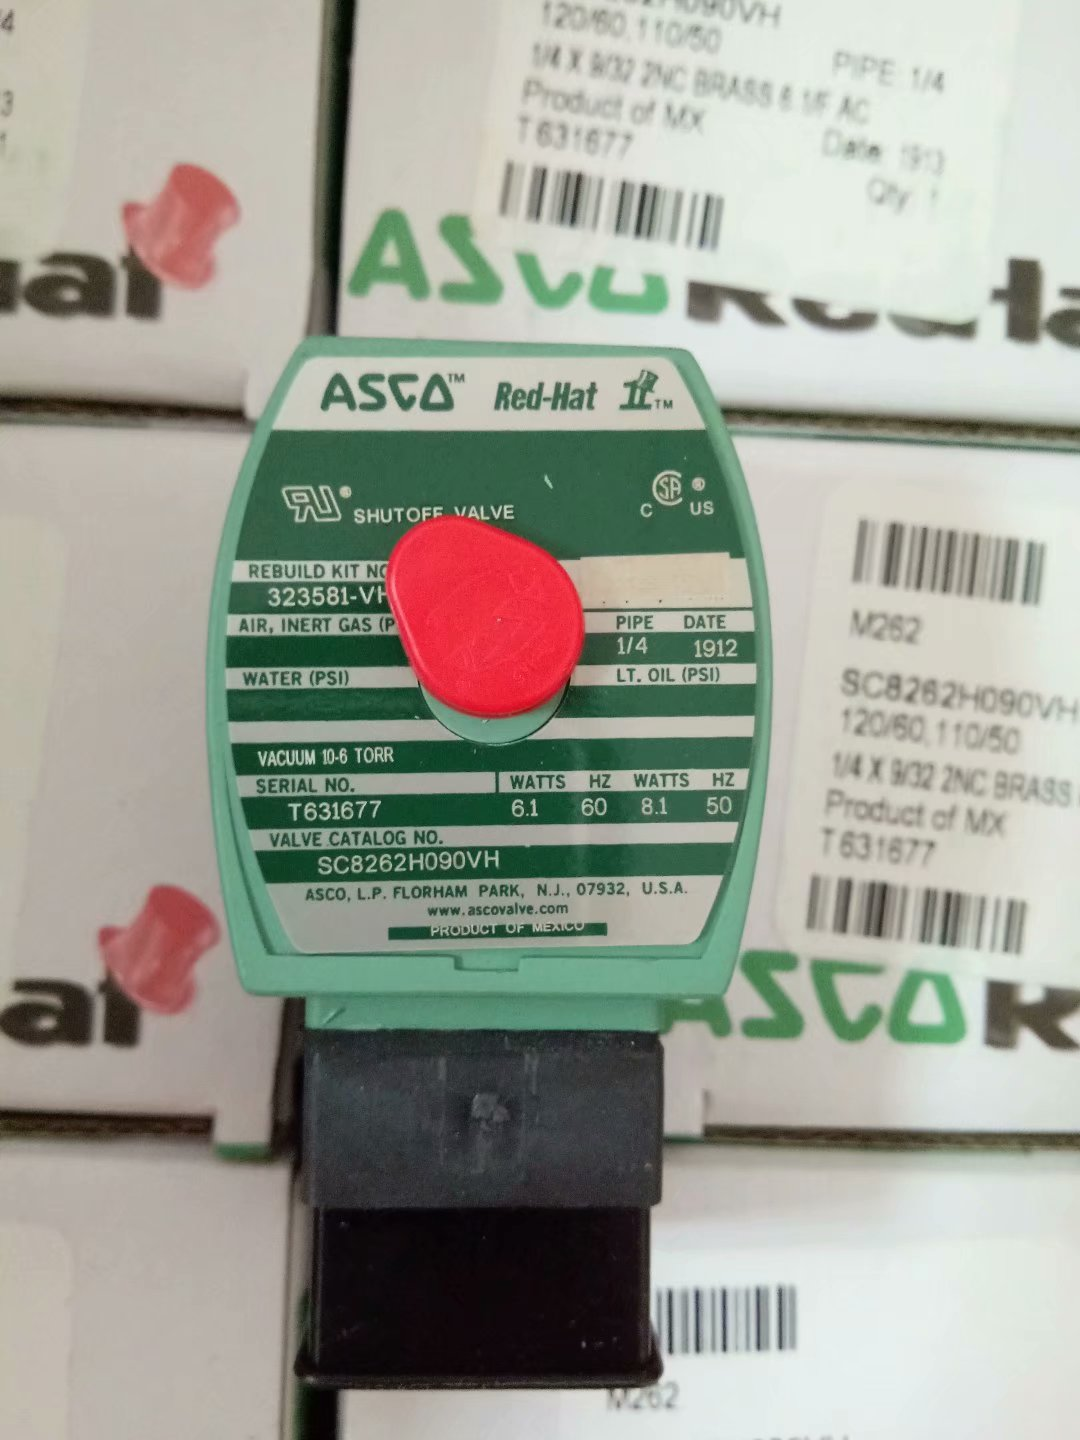 ASCO RED-HAT 1/4 in SC8262H090VH